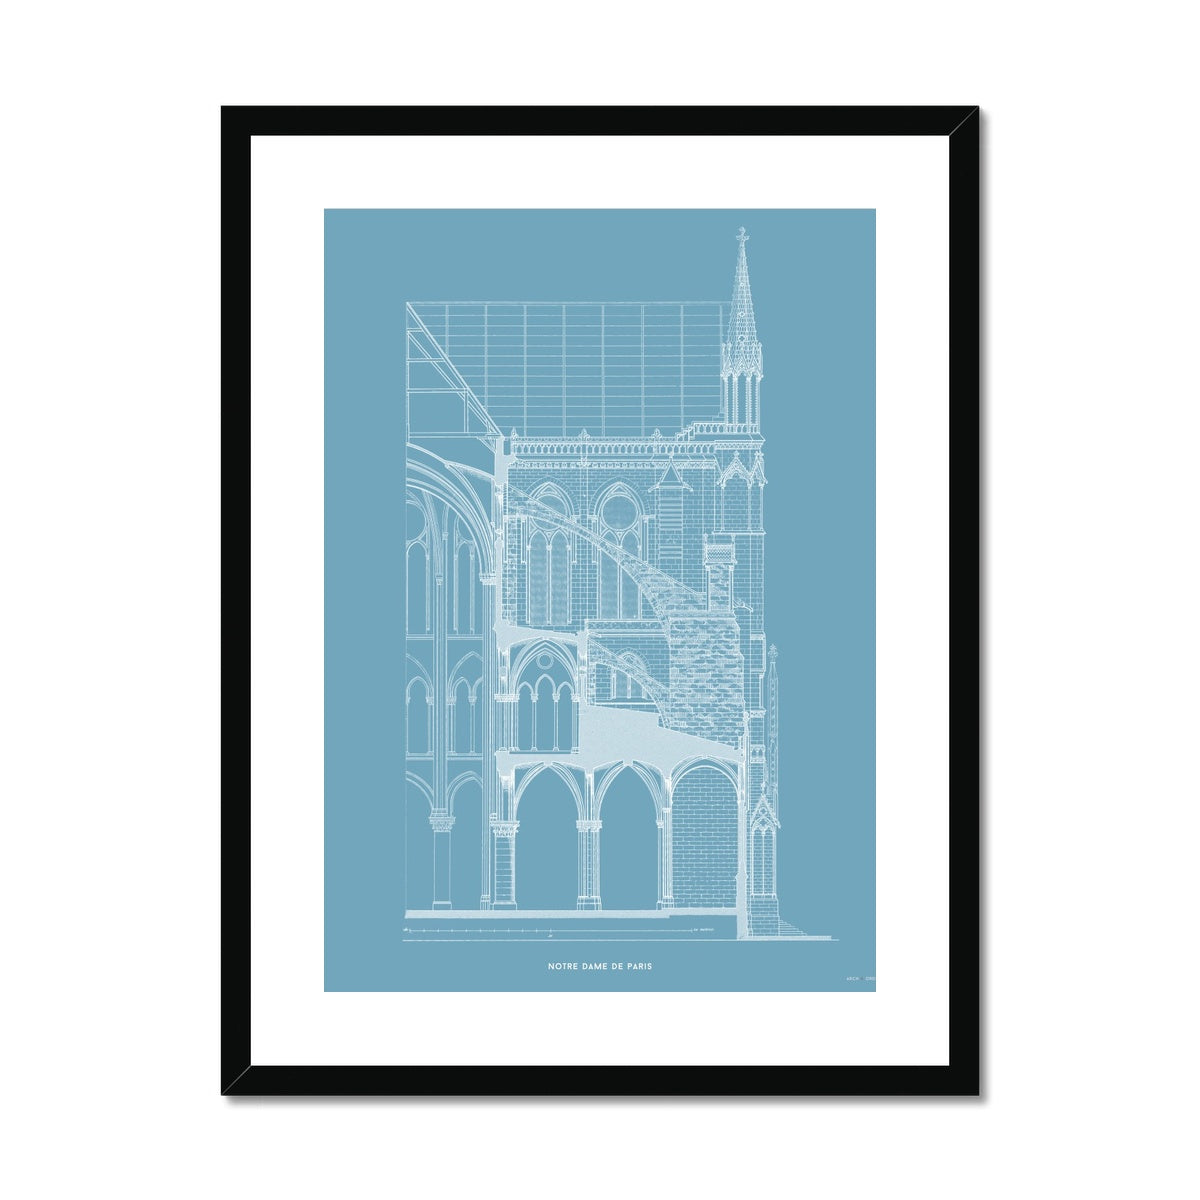 Notre Dame de Paris - Buttress Cross Section - Blue -  Framed & Mounted Print